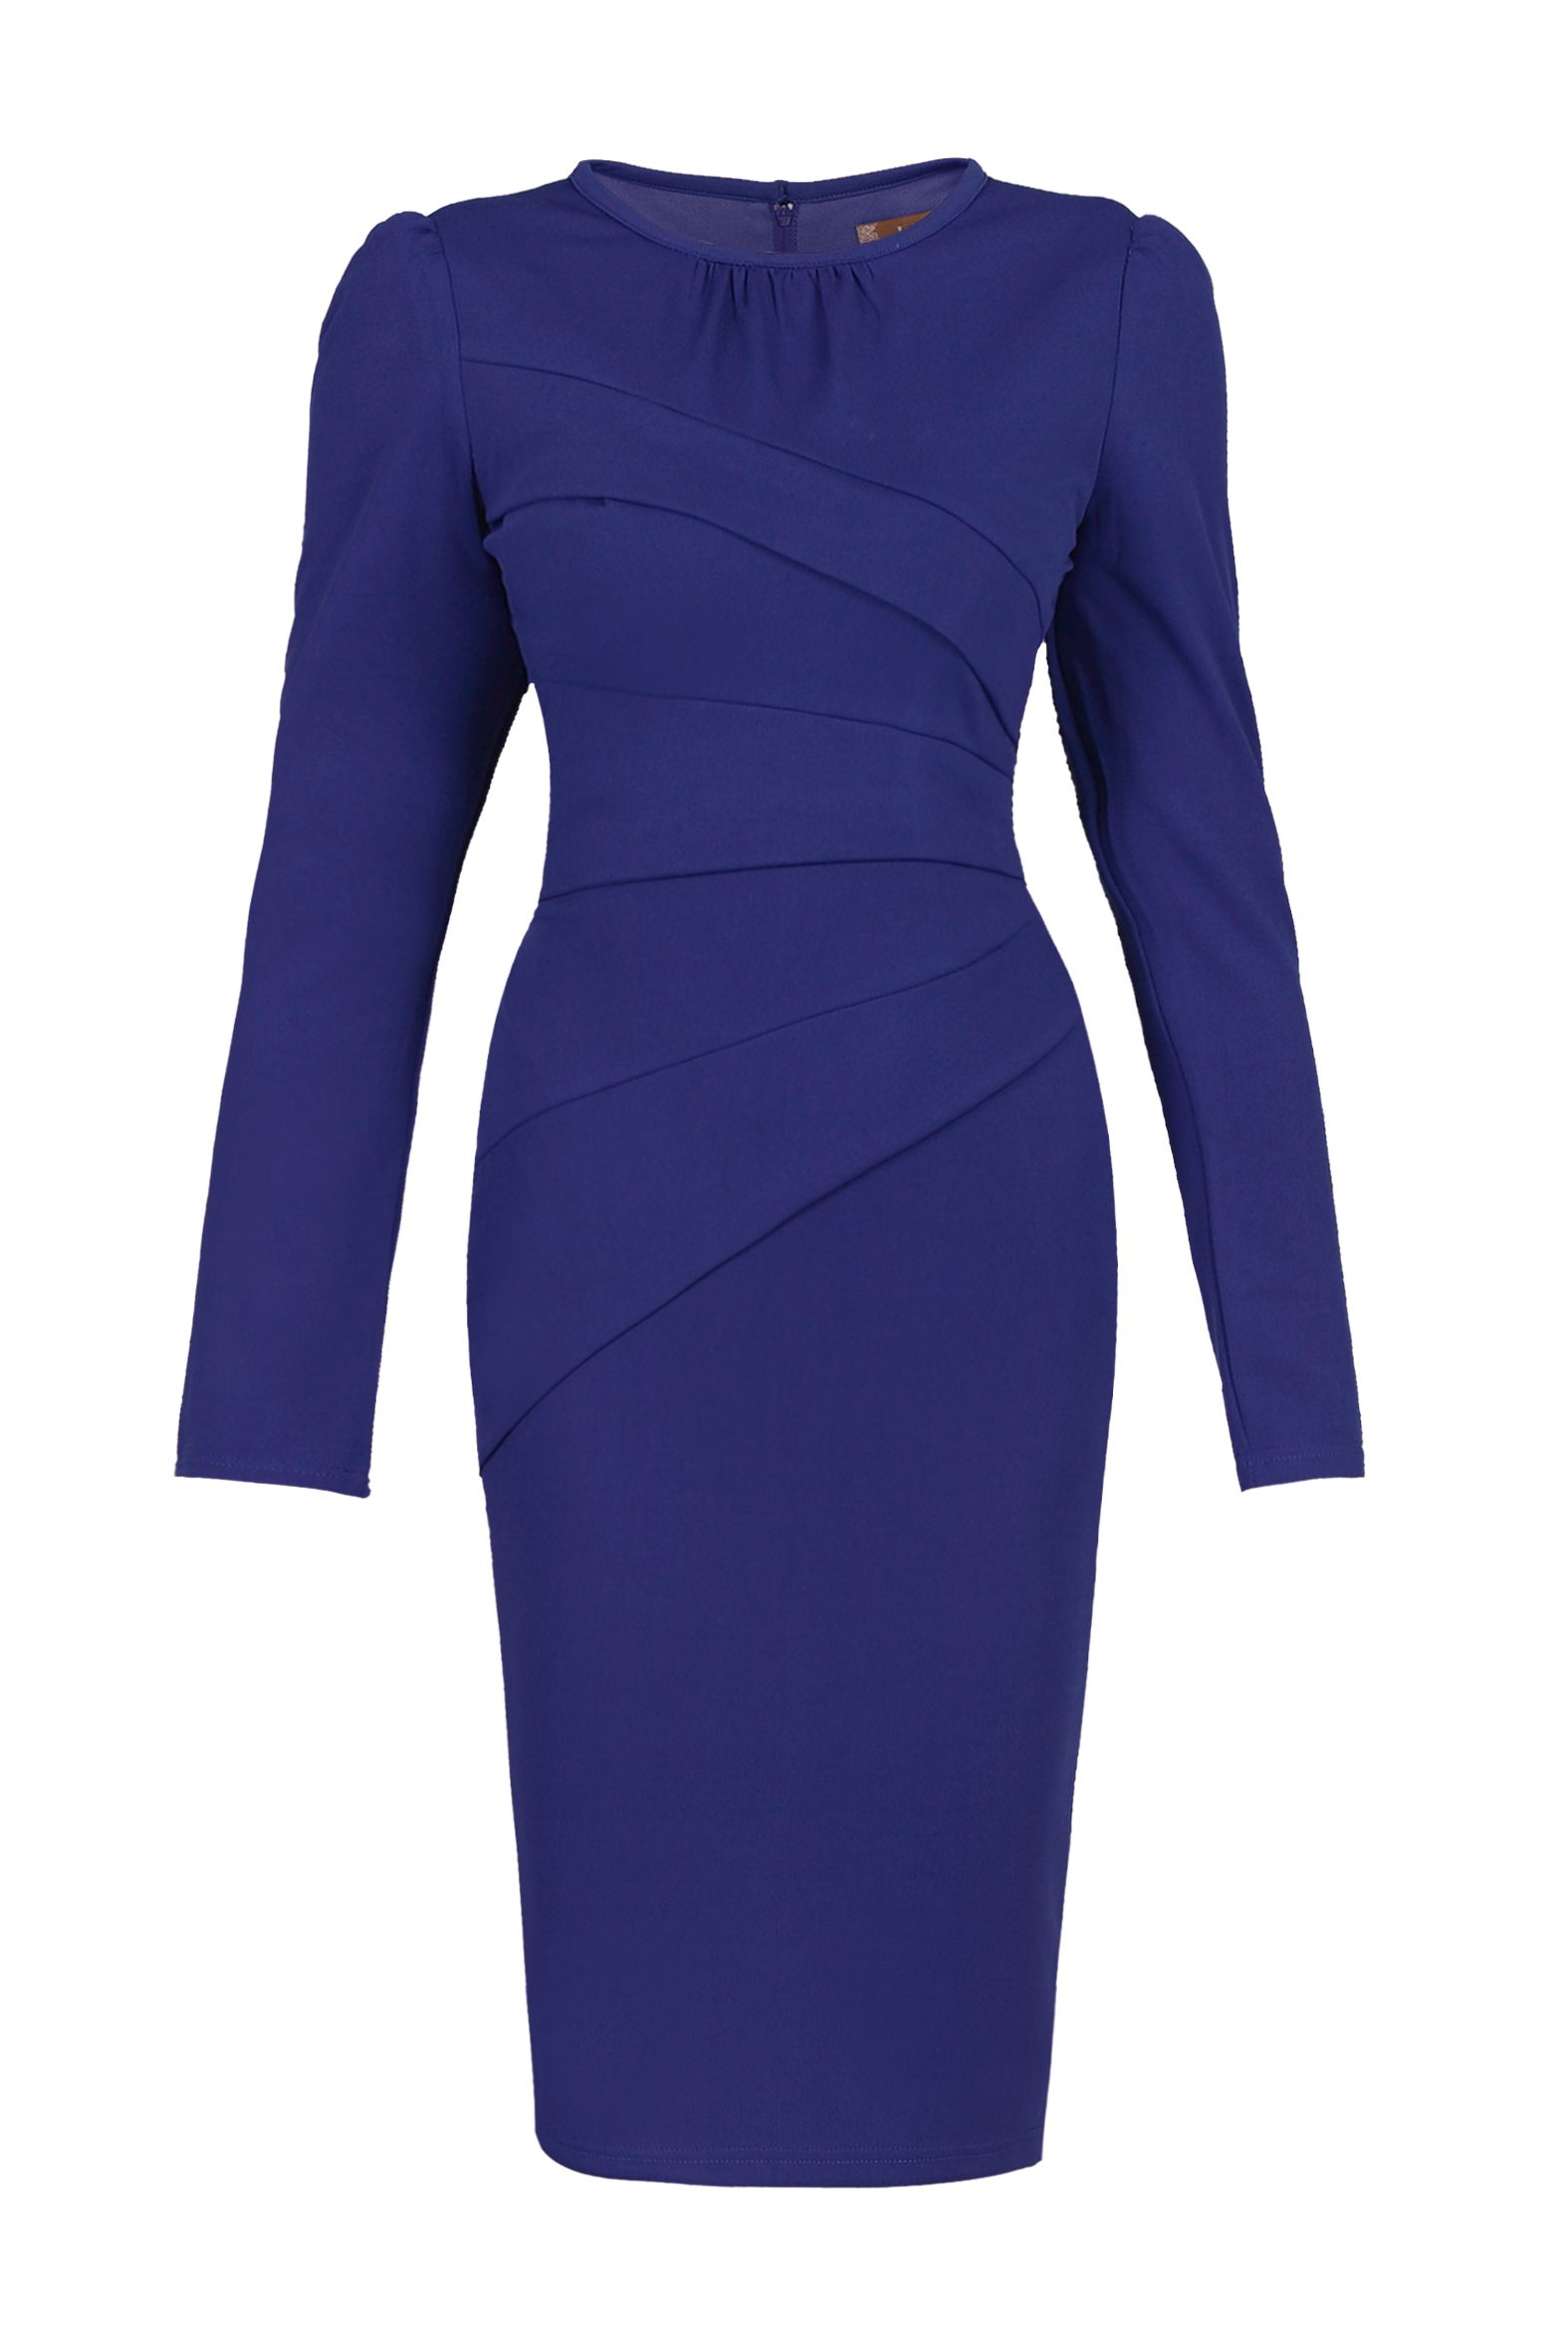 Jolie Moi Asymmetrical Fold Bodycon Dress, Royal Blue